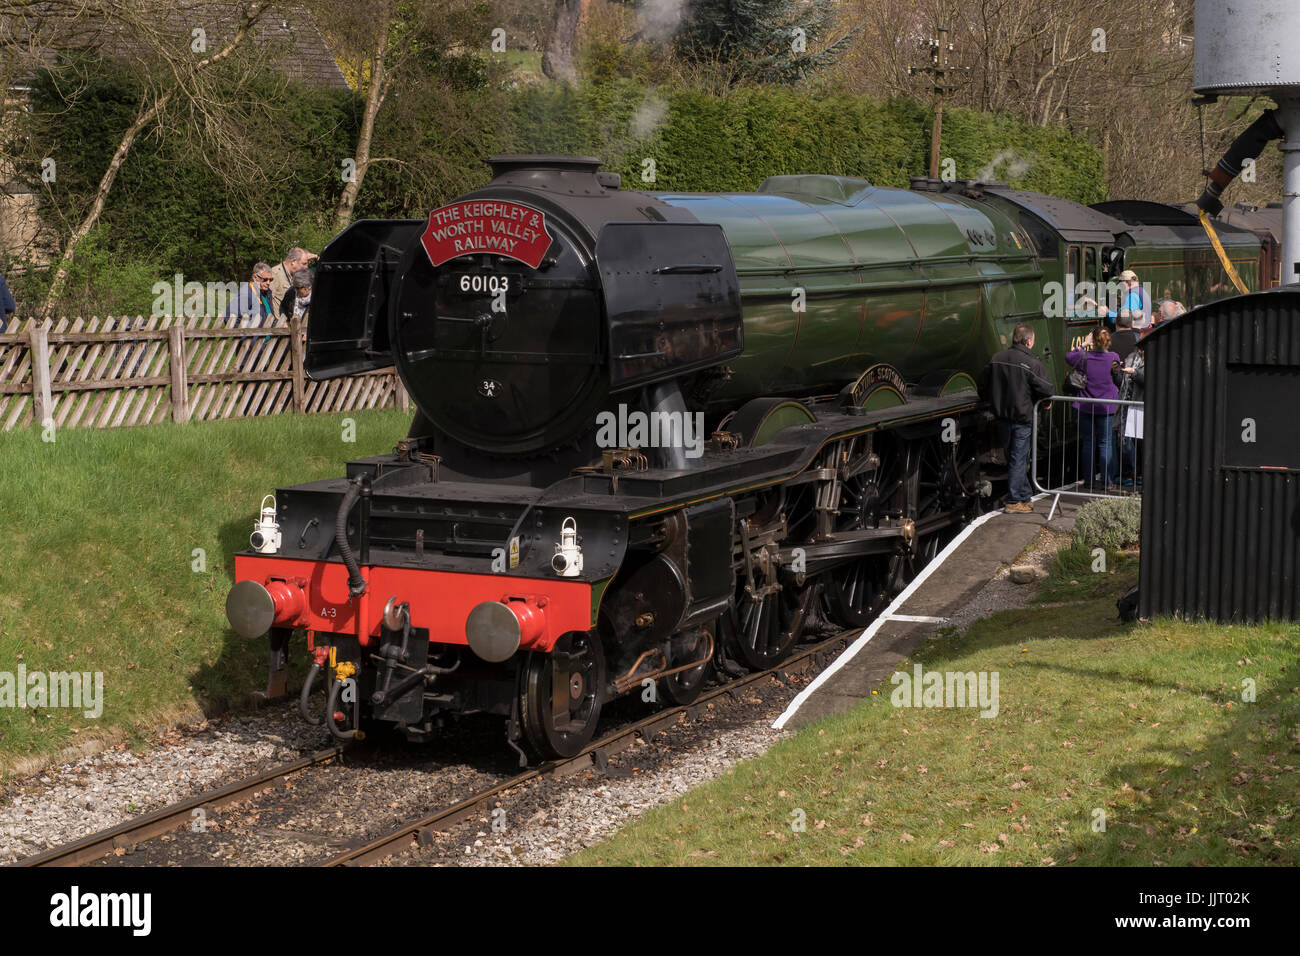 People view iconic steam locomotive, LNER Class A3 60103 Flying Scotsman, on rail tracks - Keighley and Worth Valley - Stock Image